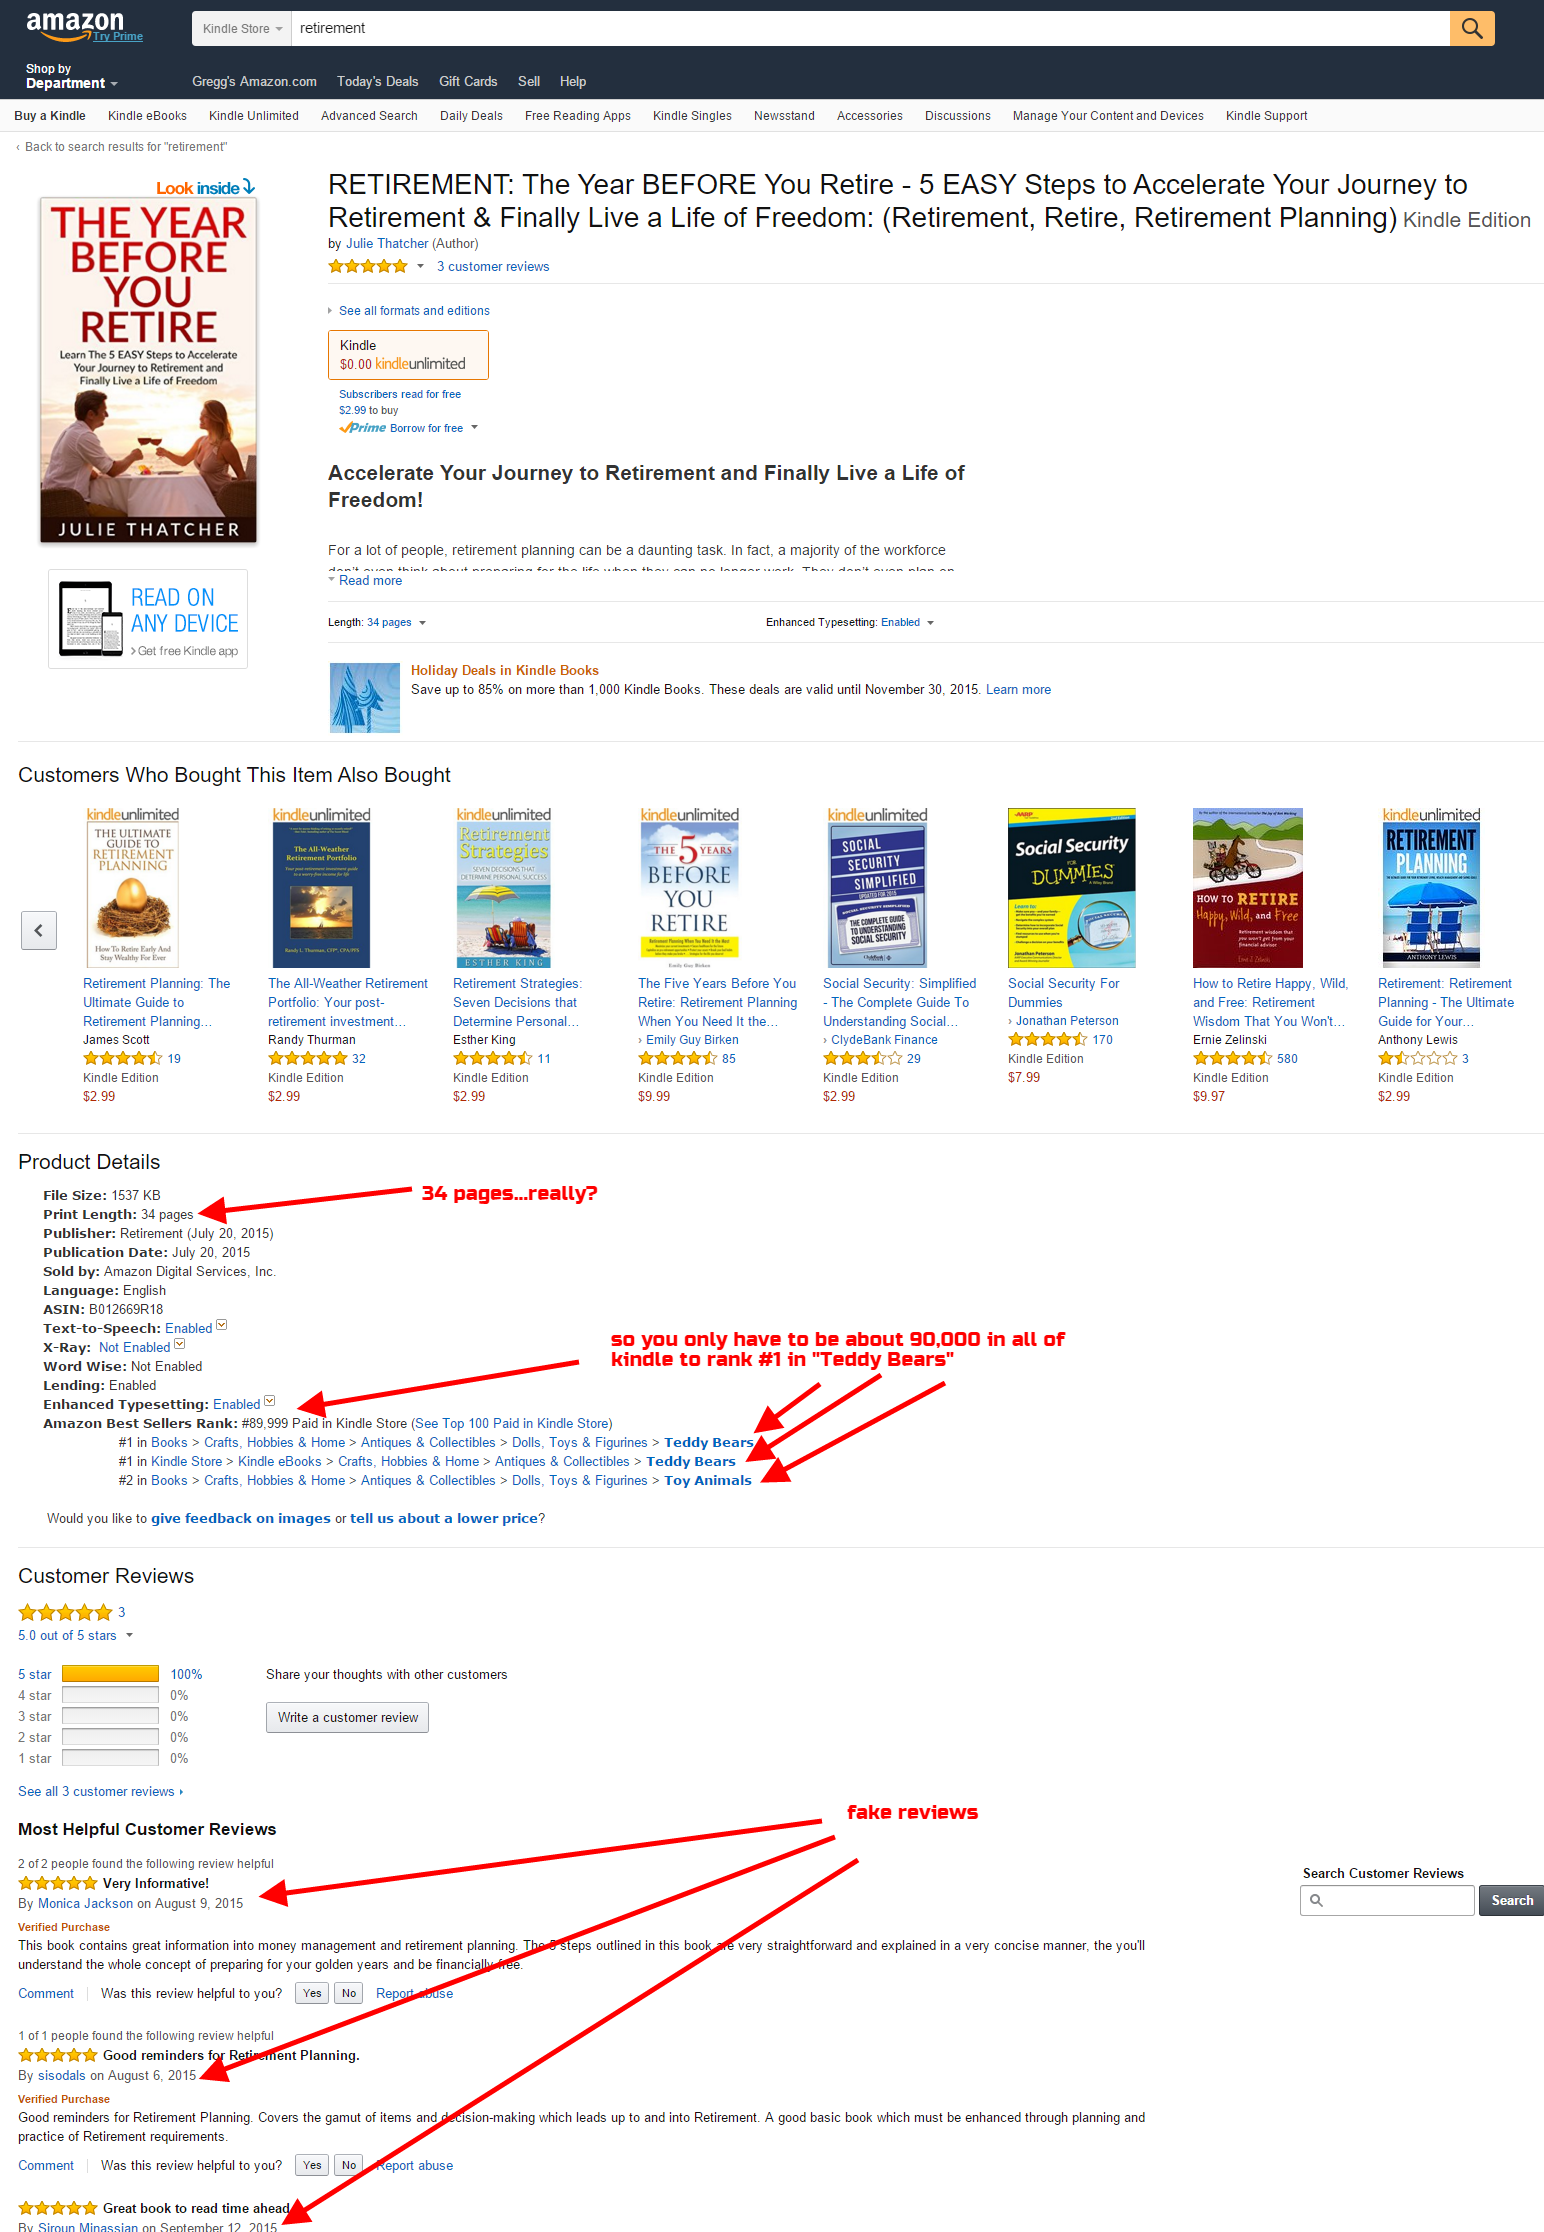 02 - Amazon Kindle SEO - scam example